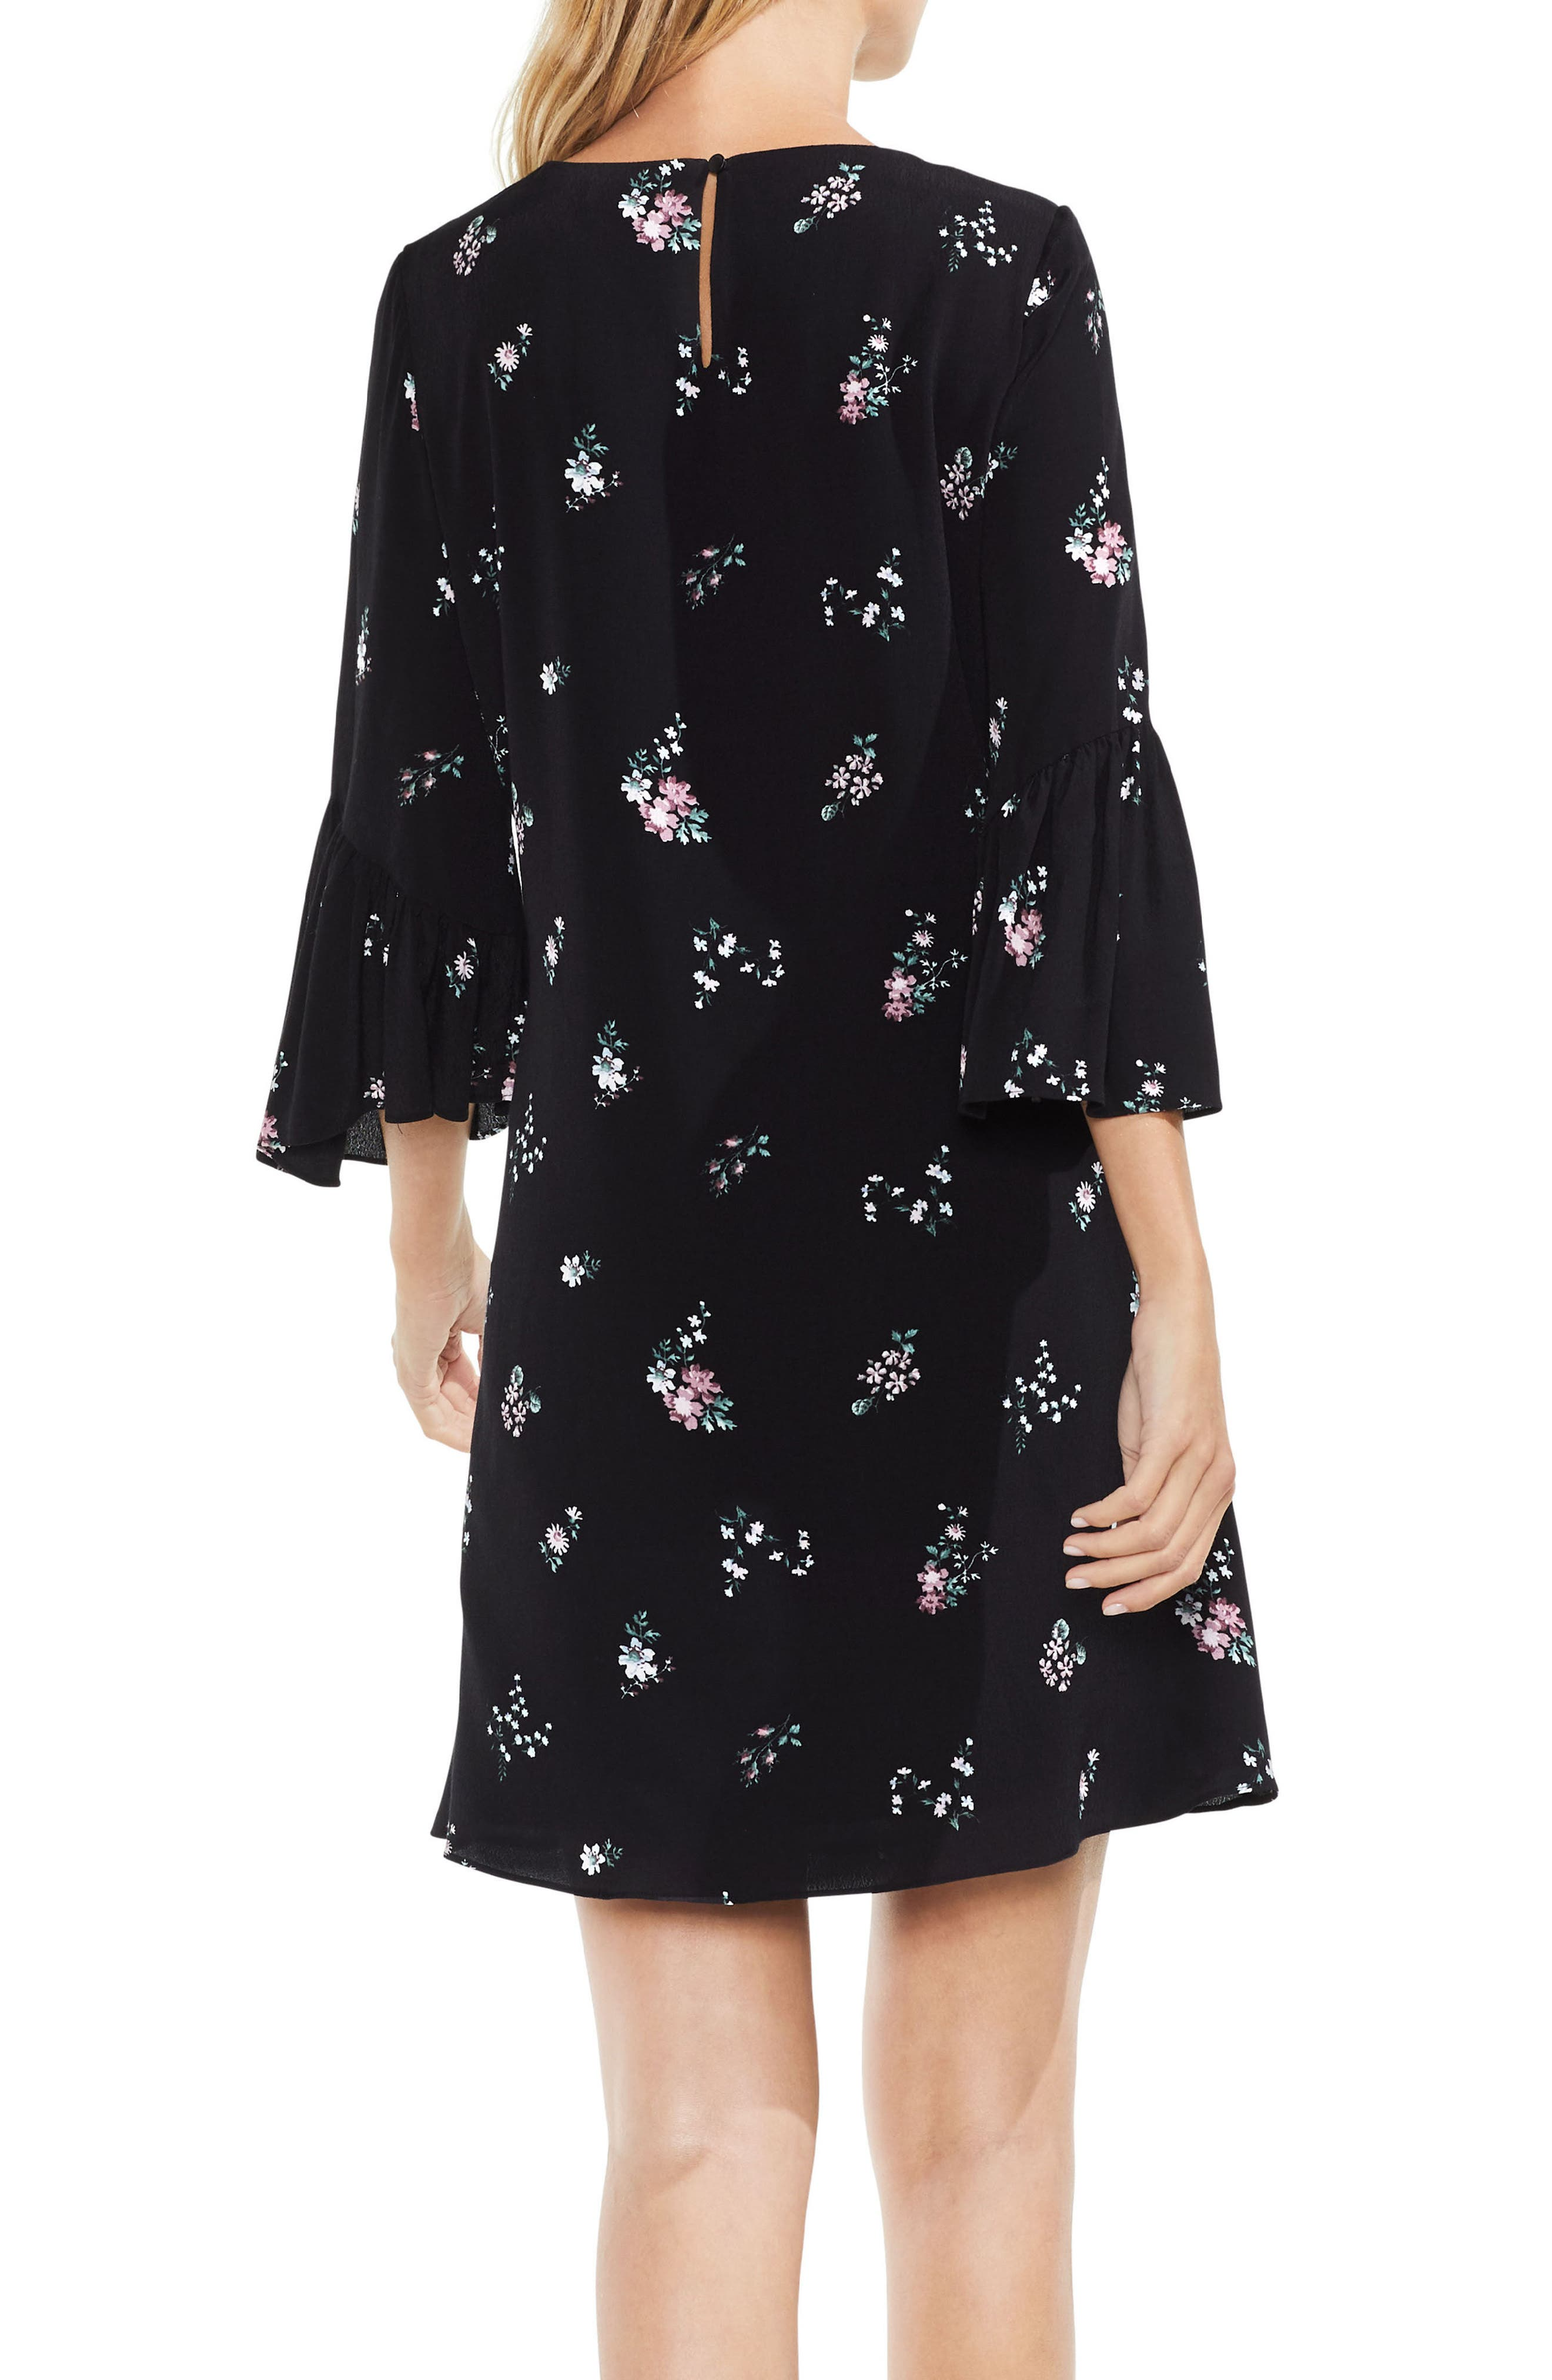 Ruffle Sleeve Floral Dress,                             Alternate thumbnail 2, color,                             006